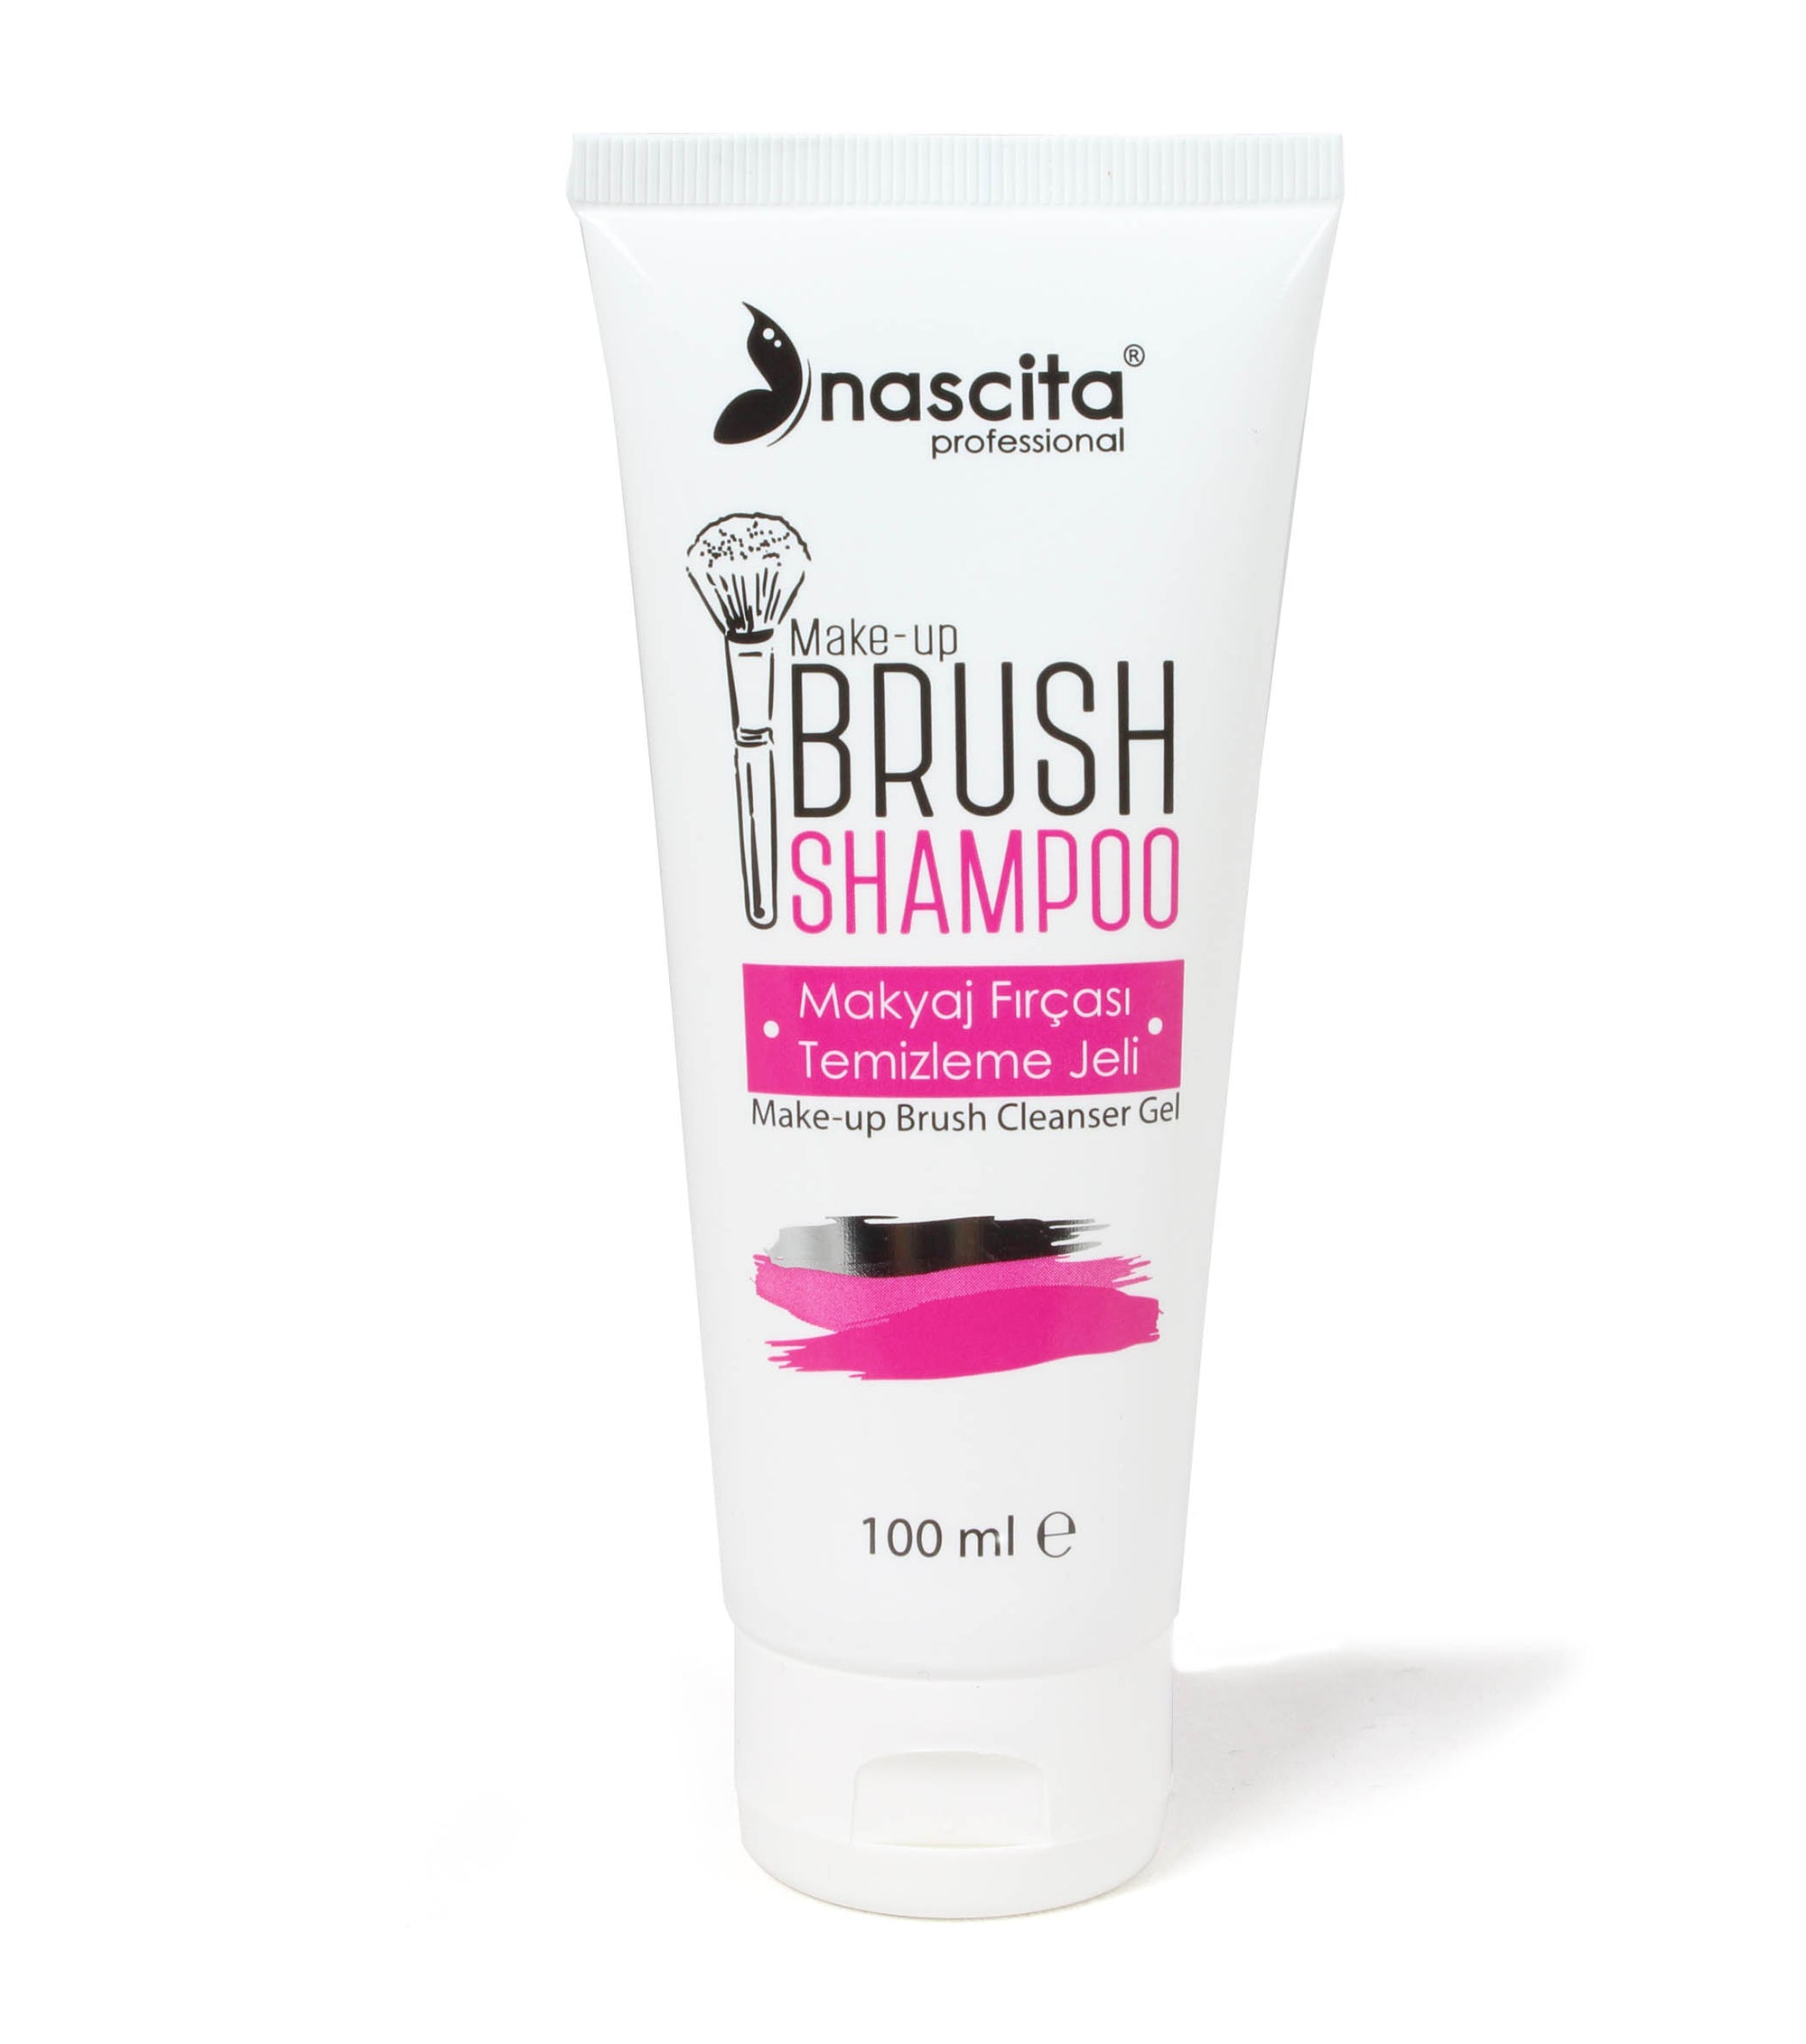 Nascita Brush Shampoo Brush Cleaner Gel - 100ML